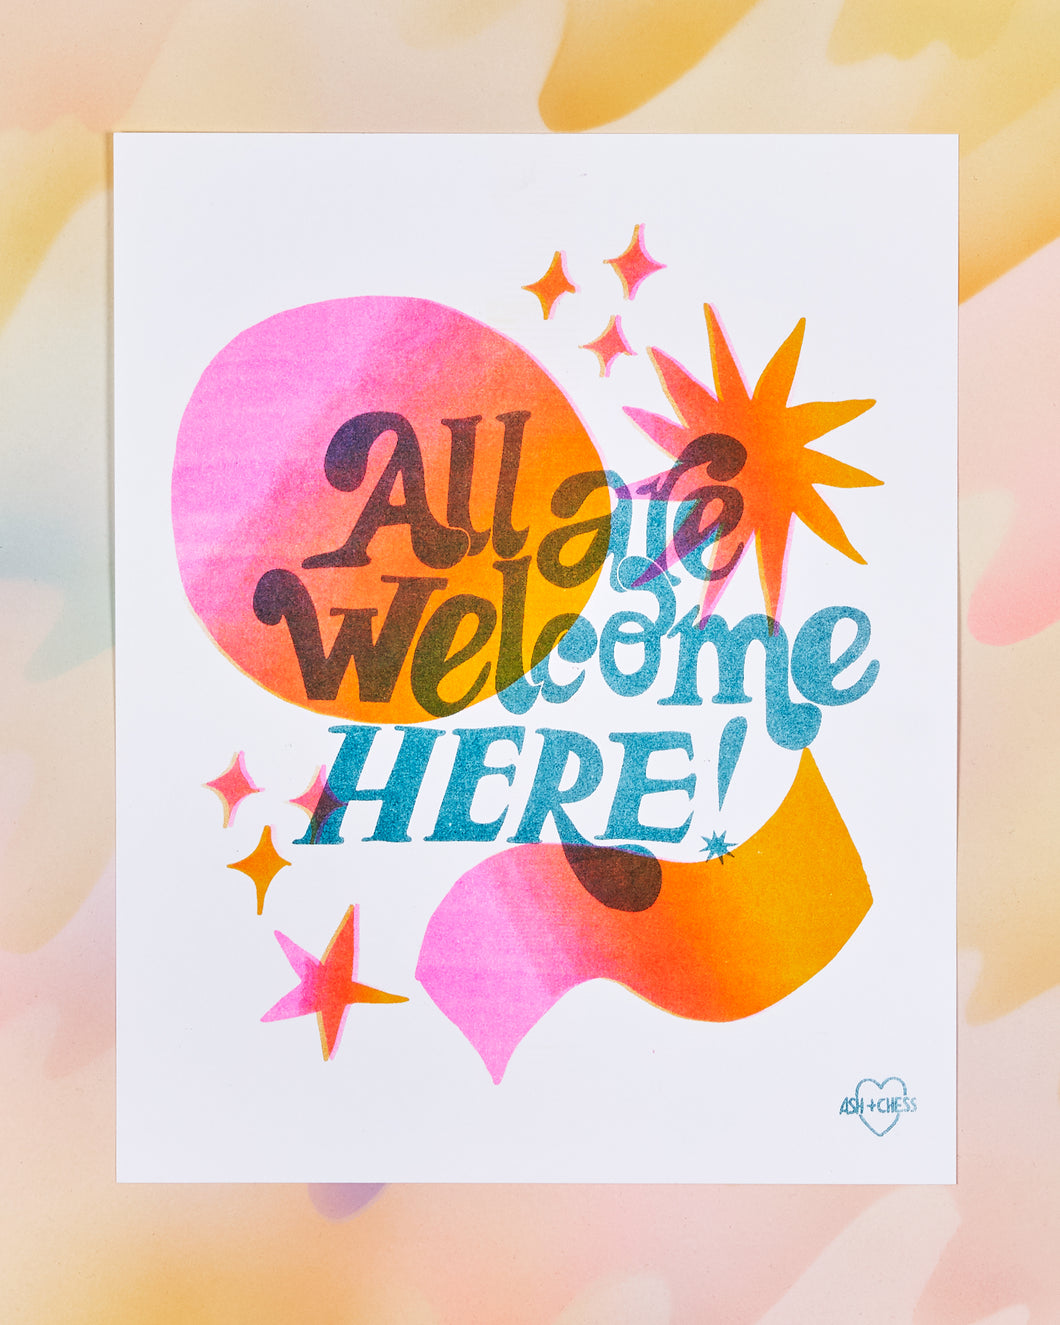 All Are Welcome Here Risograph Print